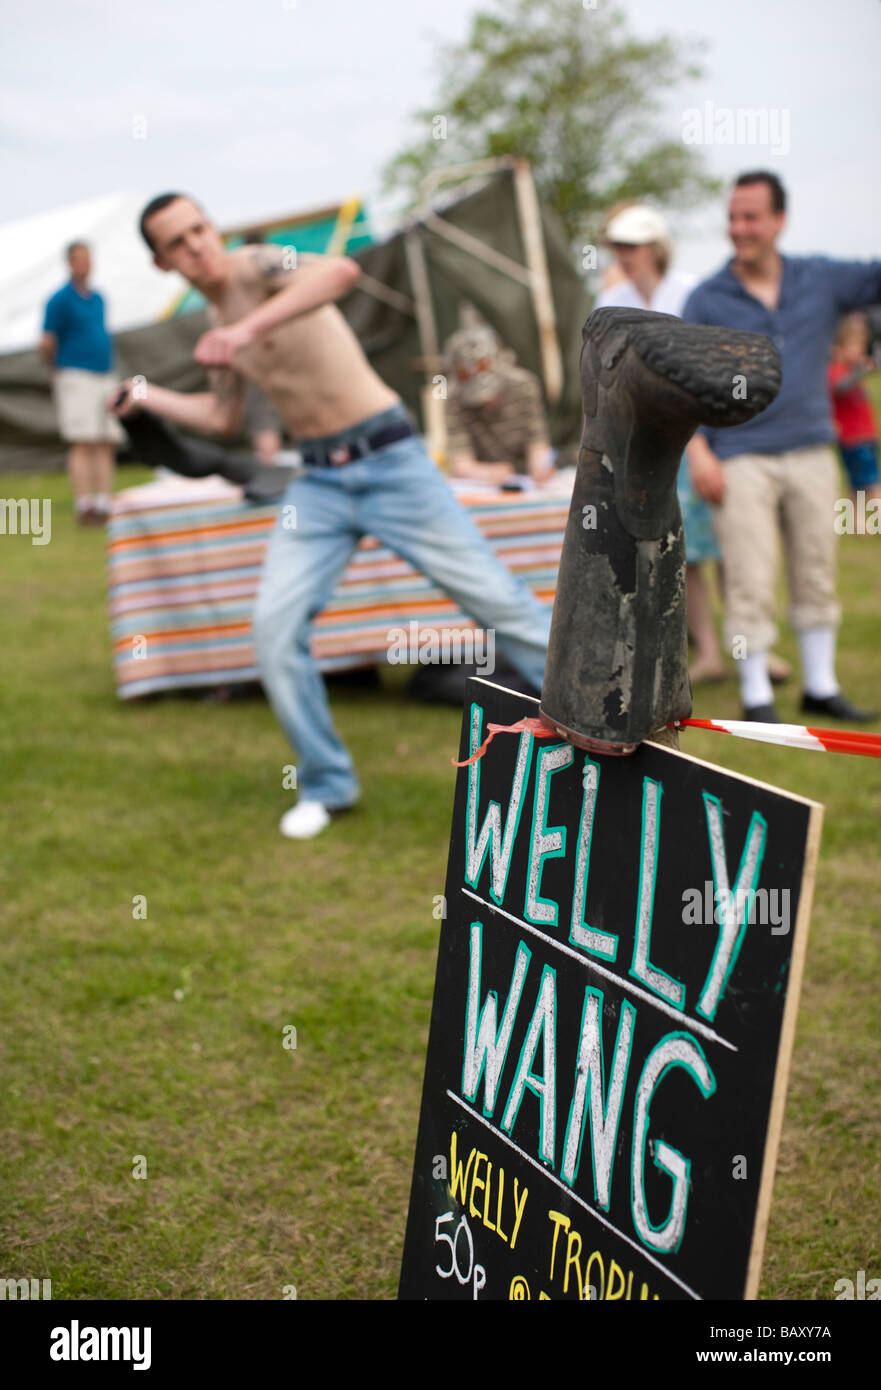 Welly wanging A village fete in rural england - Randwick, Stroud, Gloucestershire, UK Stock Photo